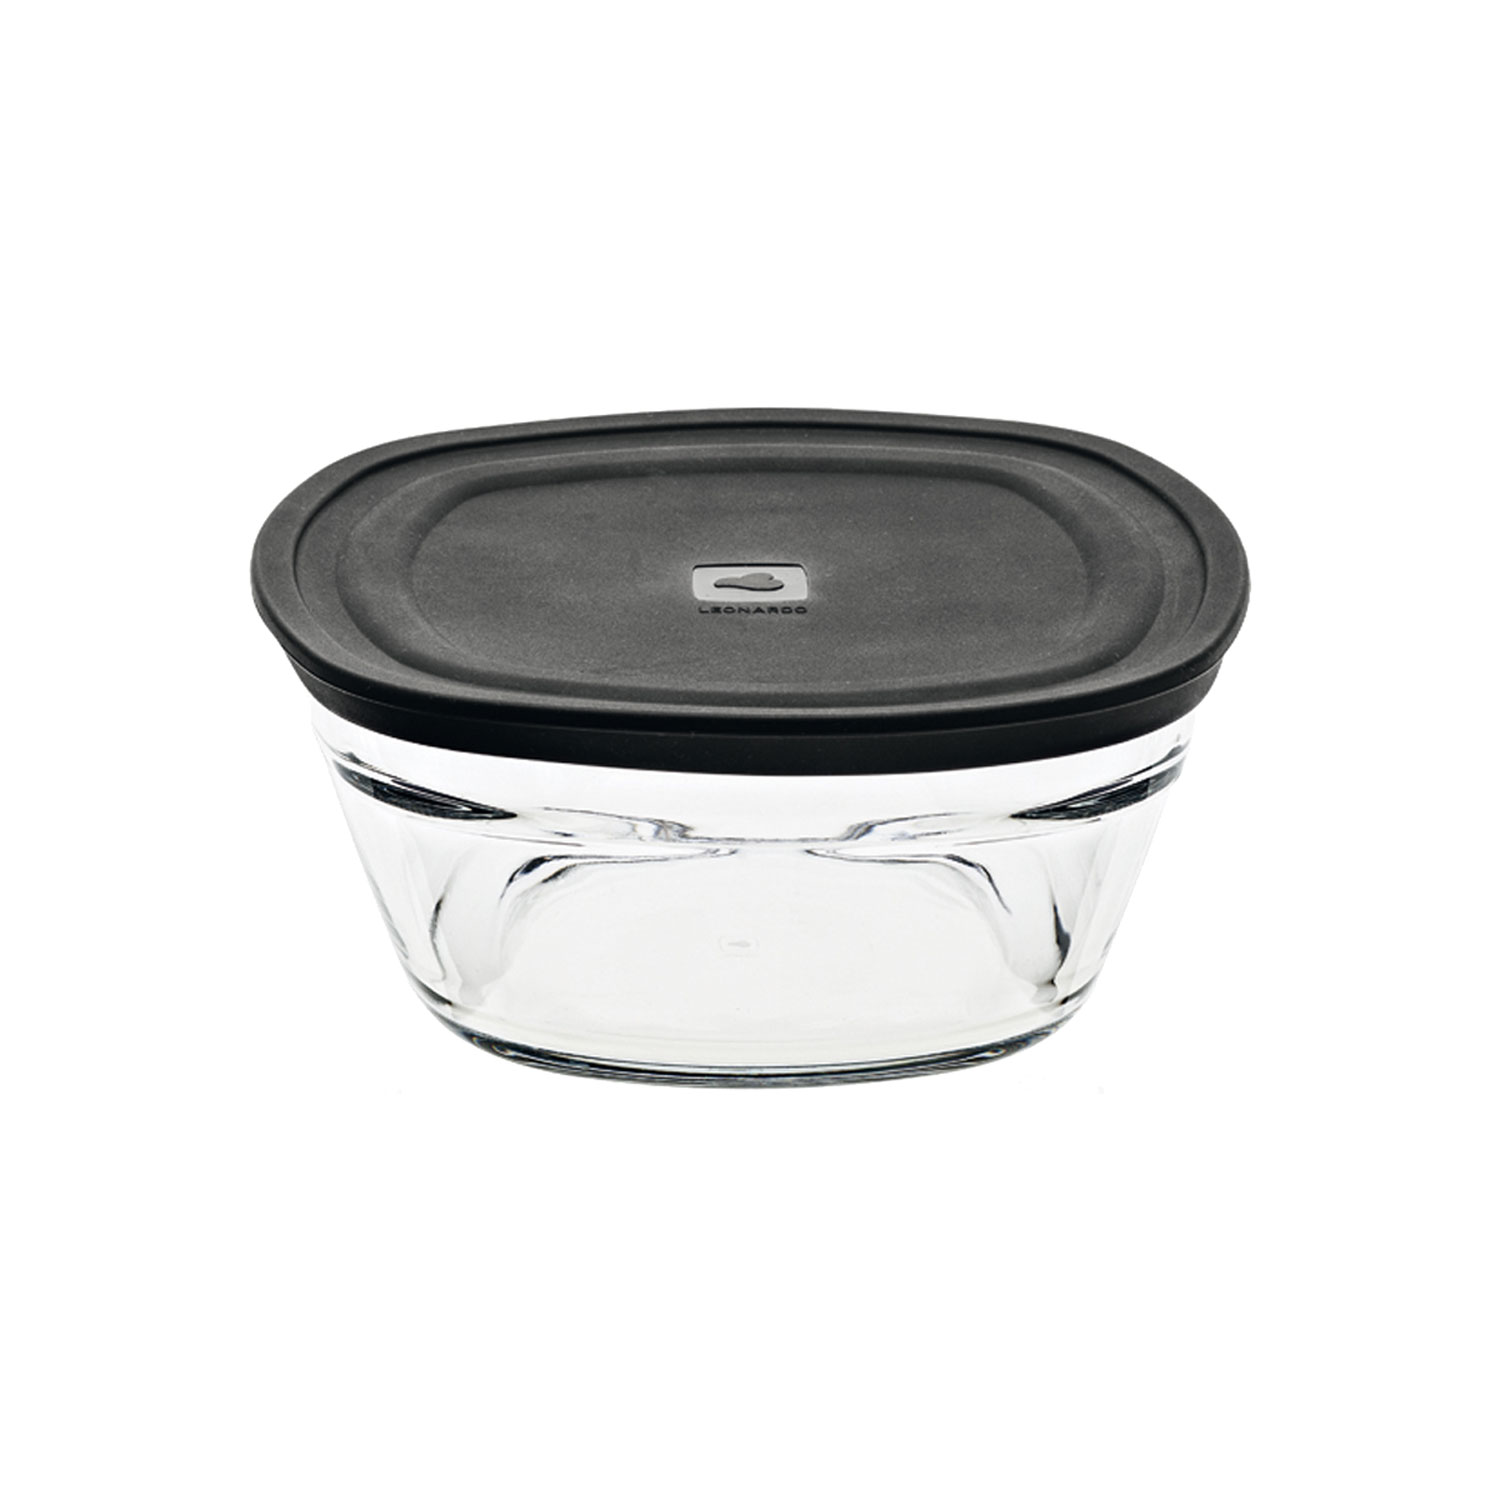 Container Cucina Leonardo Cucina Airtight Container With Lid Storage Box Bowl Lunchbox Breakfast Container Clear Glass Mixed Materials 1000 Ml 19046 At